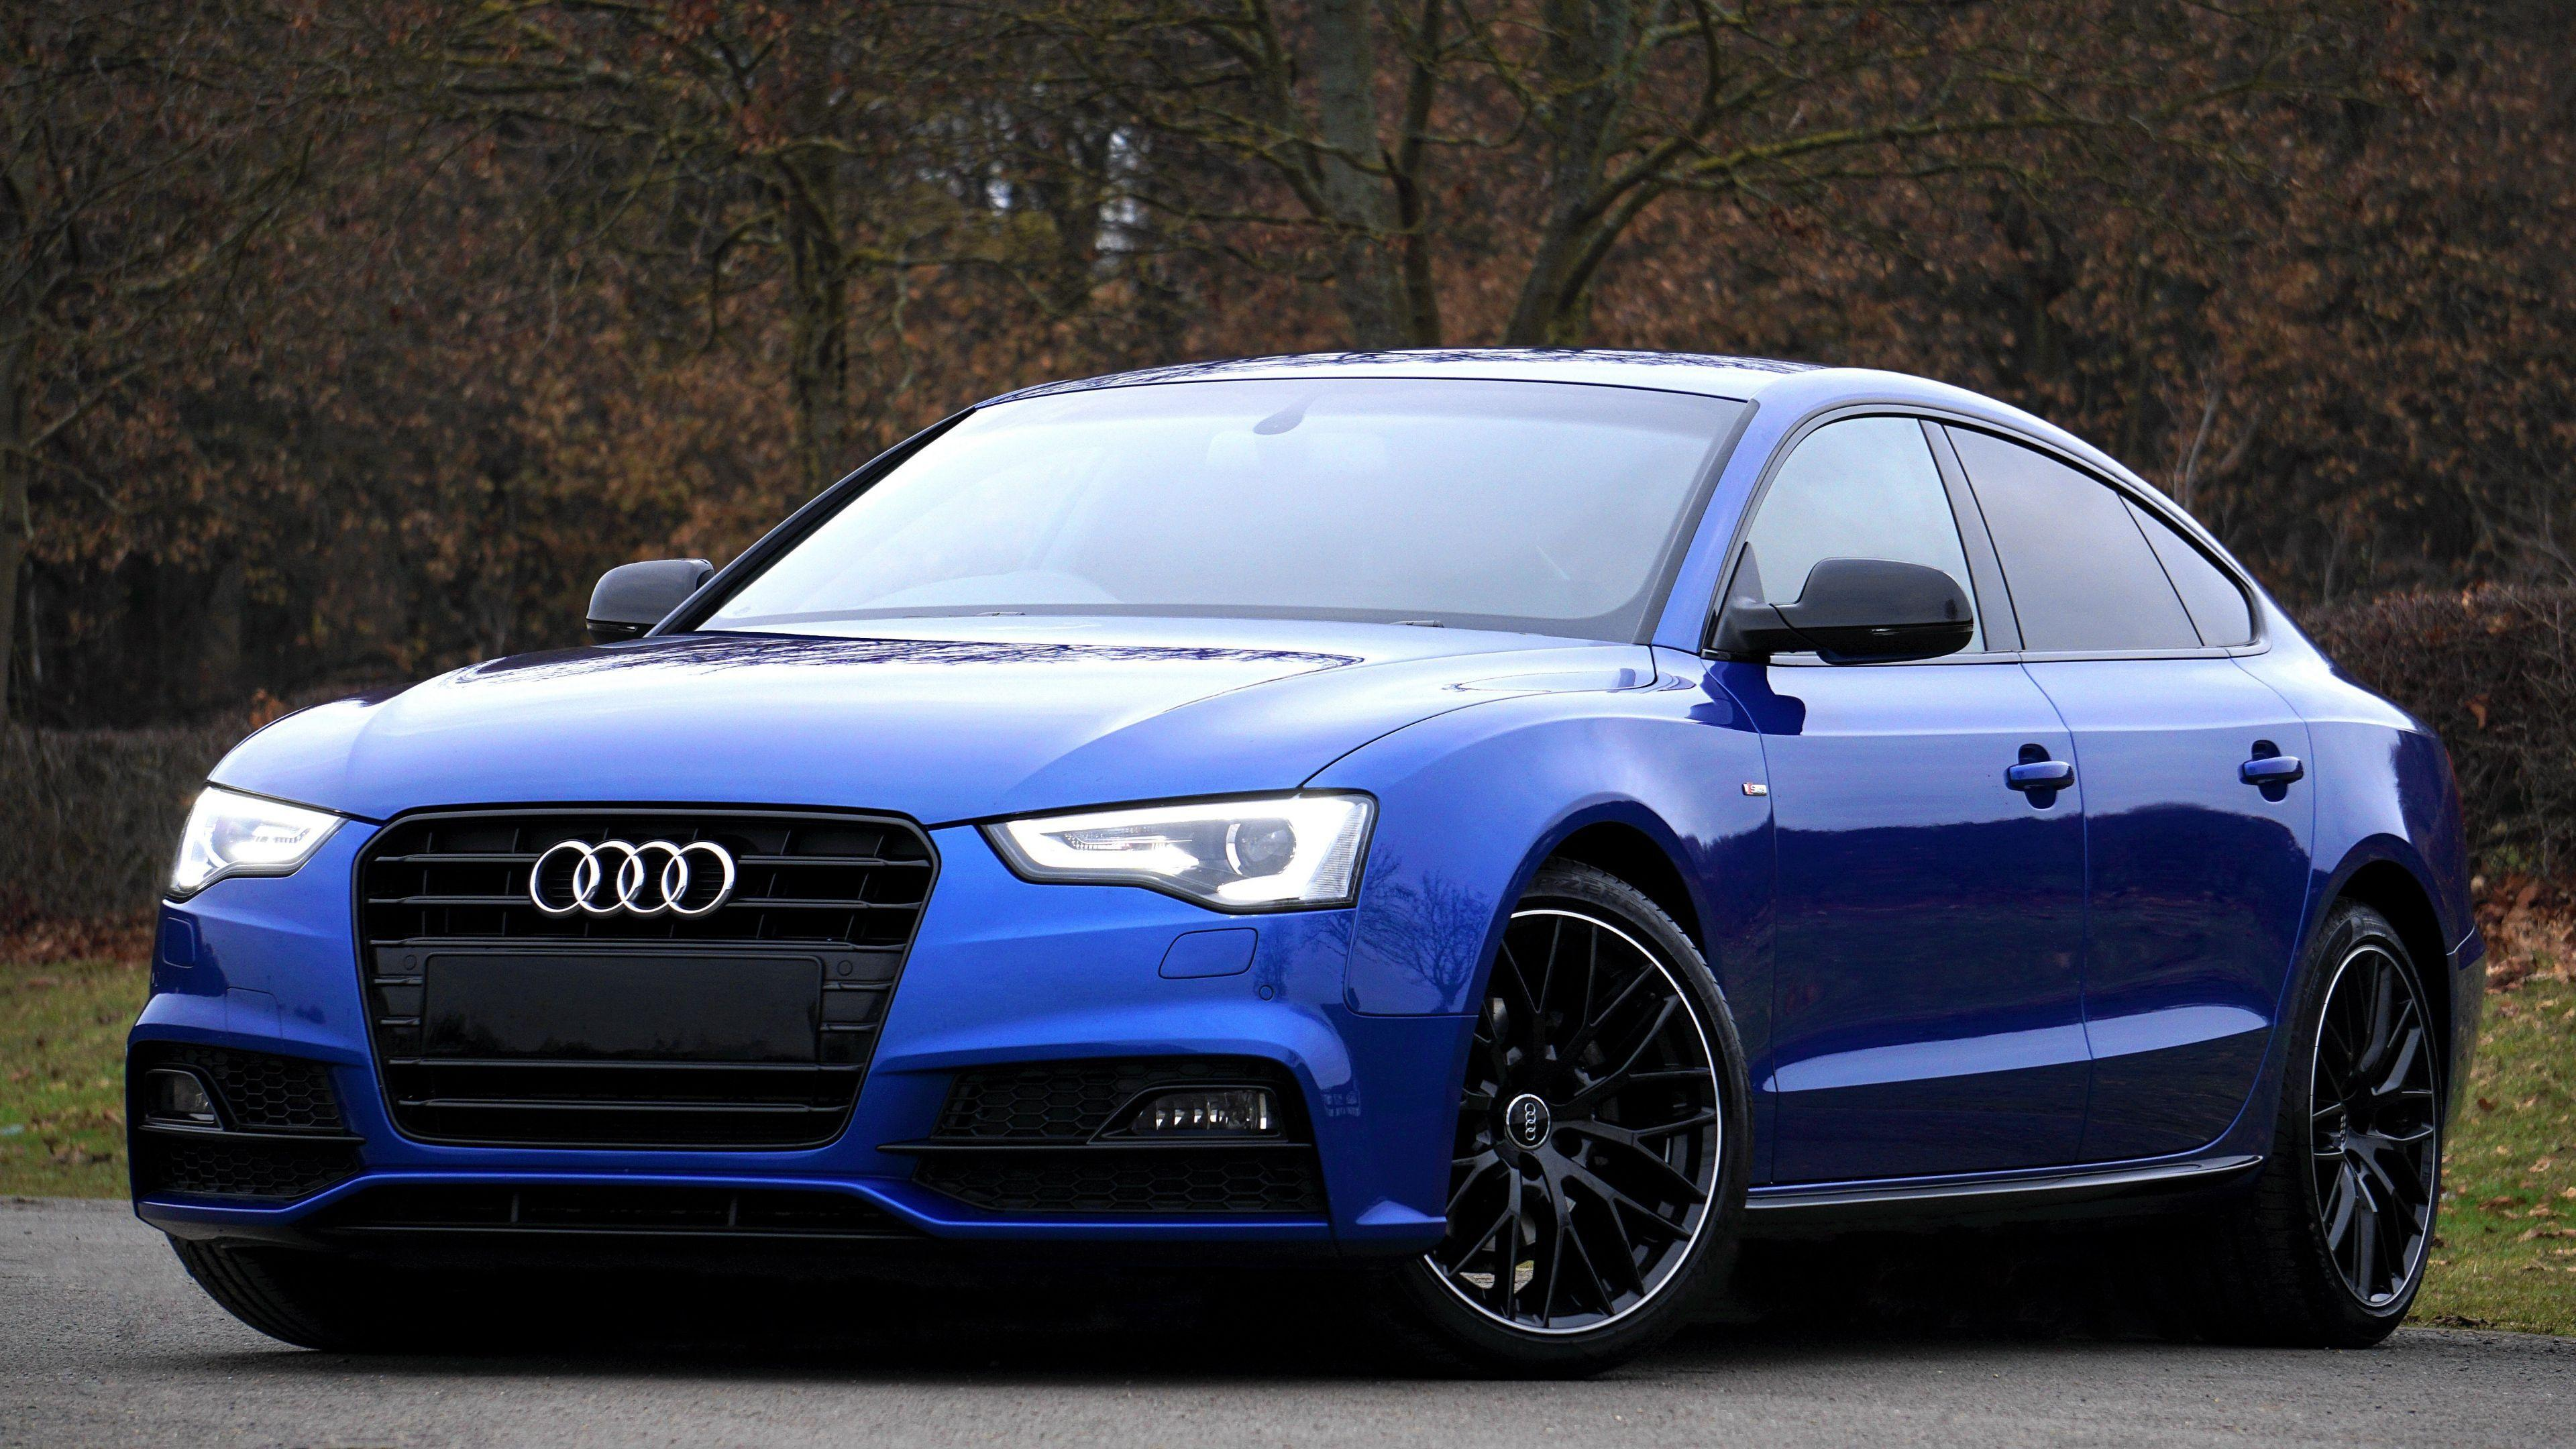 Ultra Hd Wallpapers 8k Cars Pack Audi Rs7 Wallpapers Wallpaper Cave